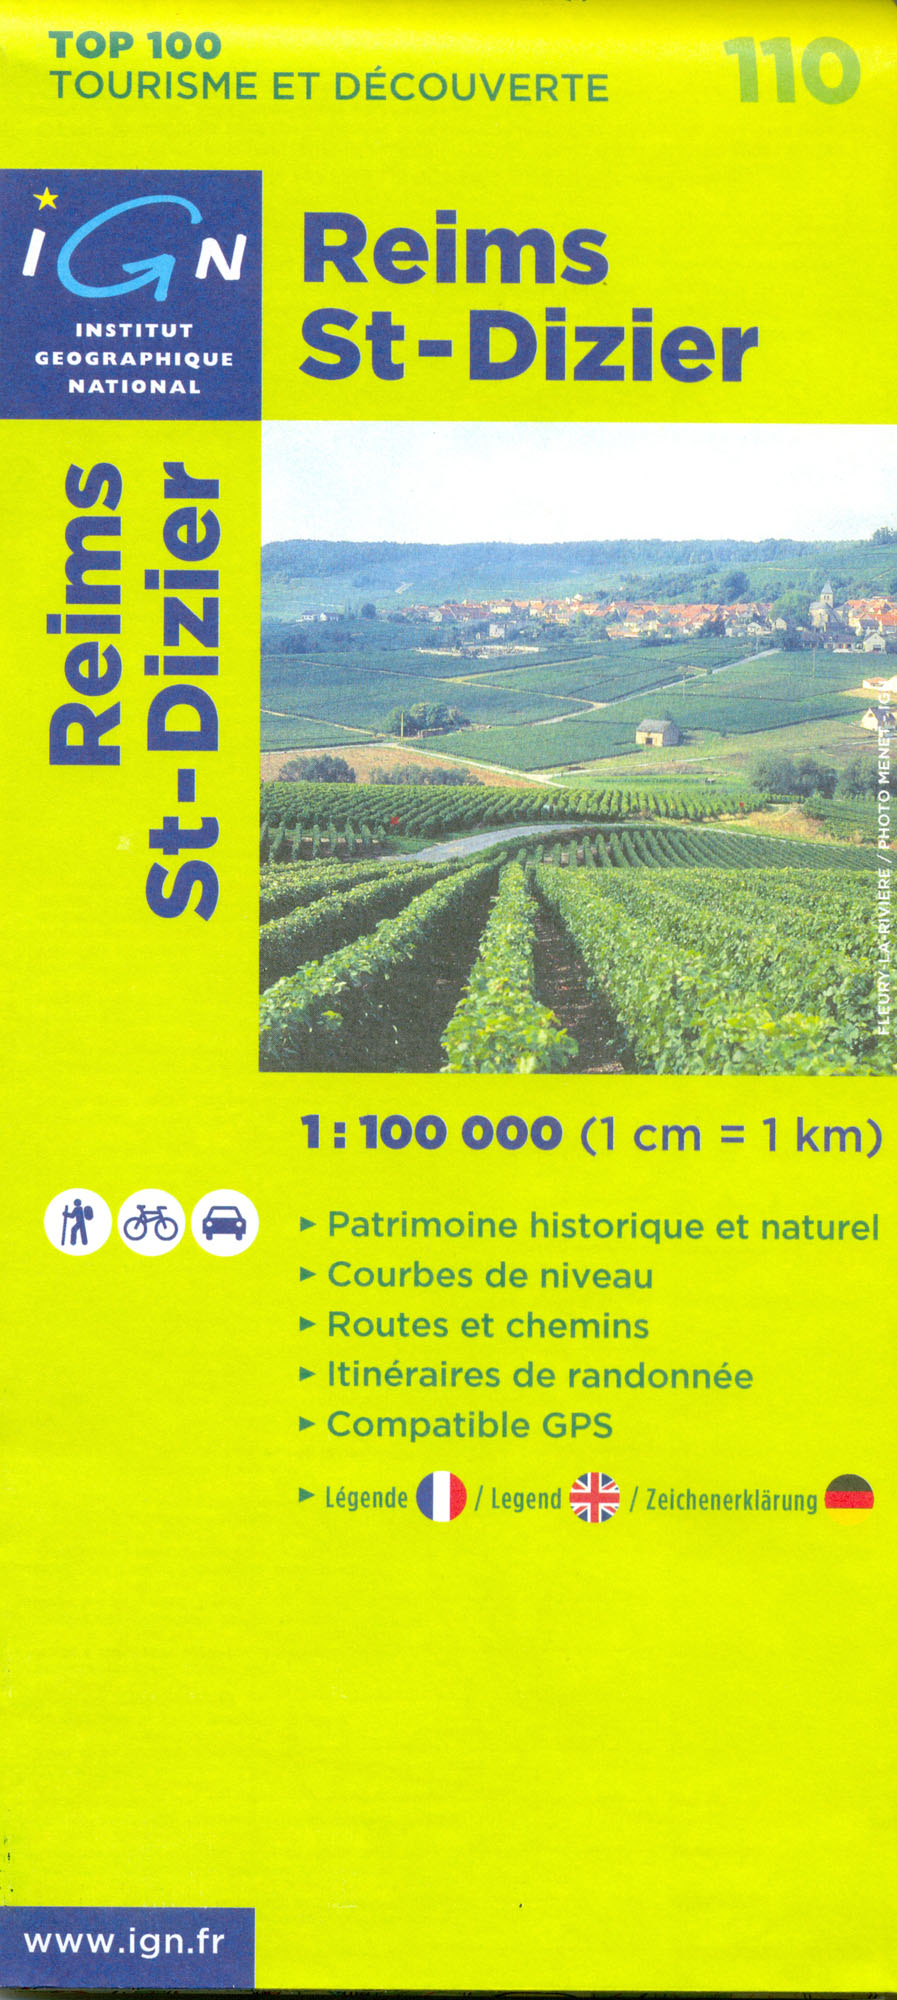 IGN 110 Reims, St-Dizier 1:100t mapa IGN